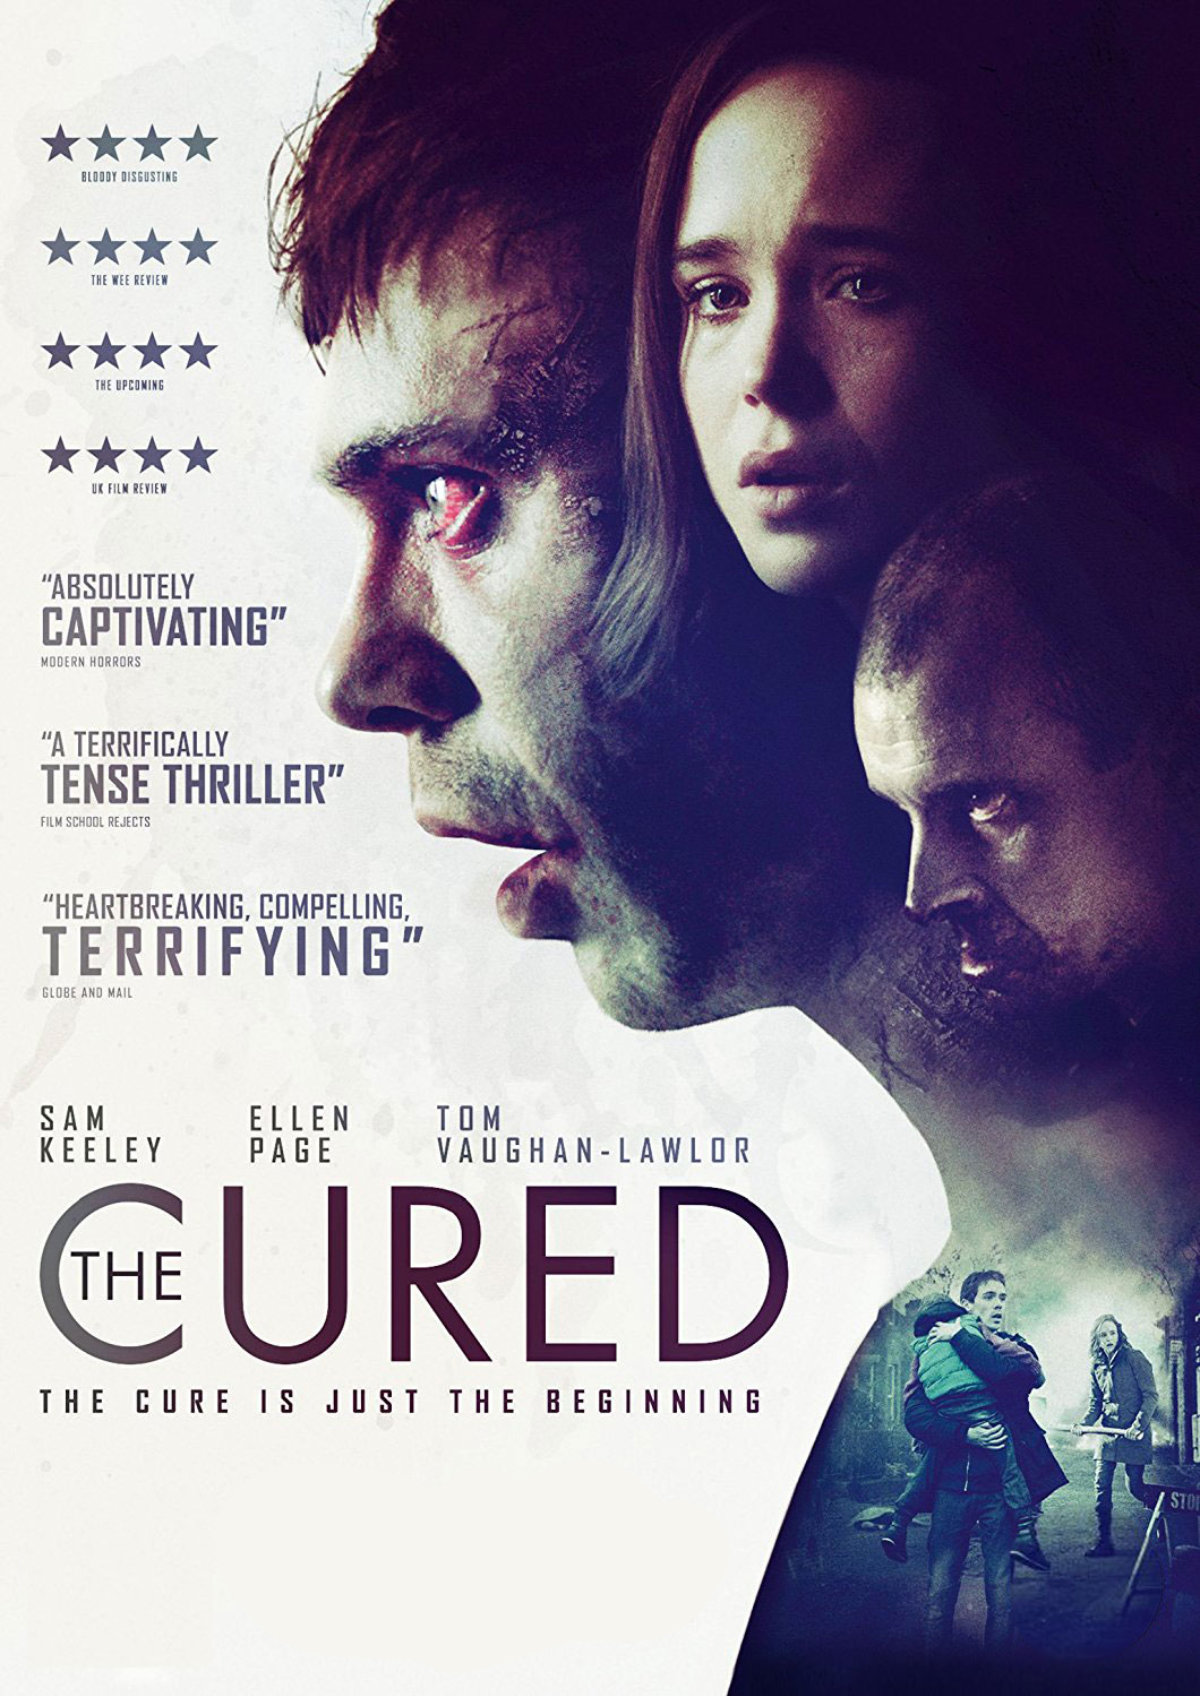 'The Cured' movie poster